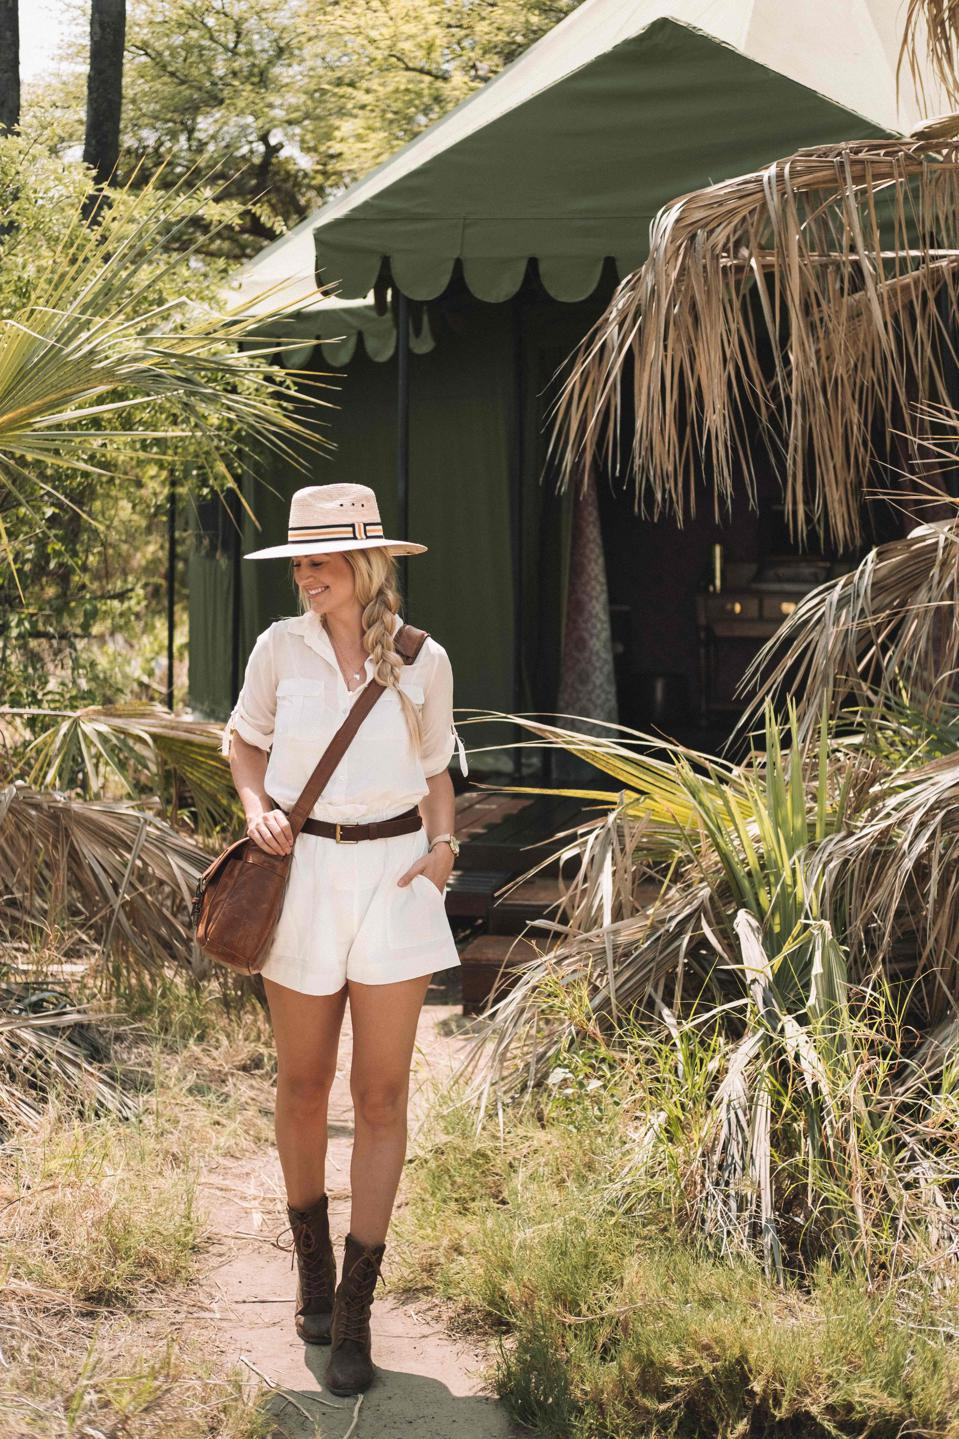 After moving to South Africa, The Blonde Abroad launched her female-only travel tours.